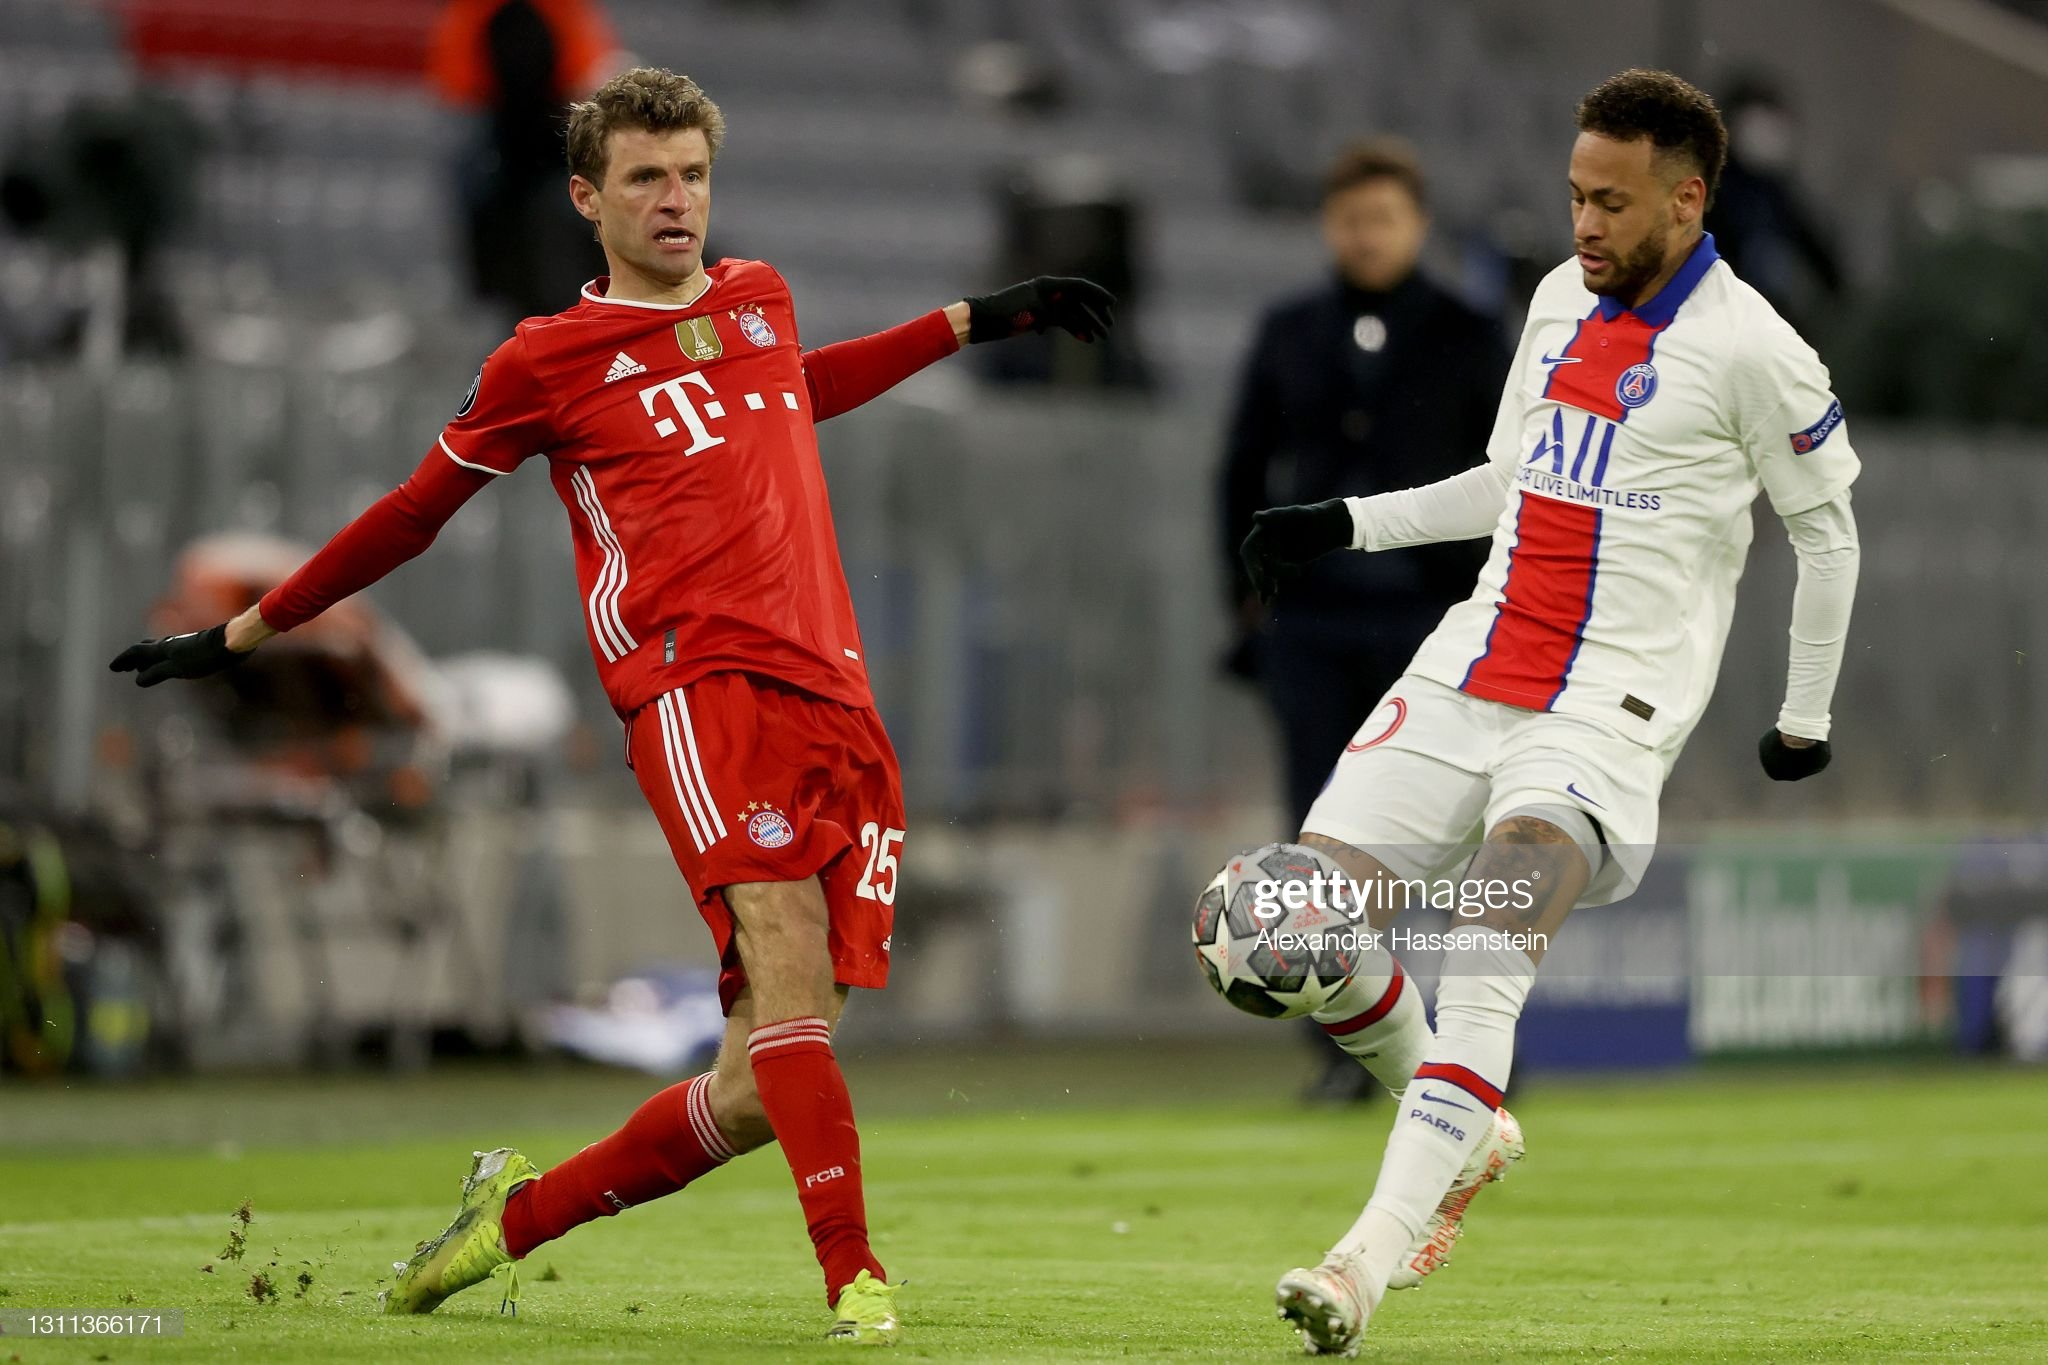 PSG vs Bayern Munich Preview, prediction and odds